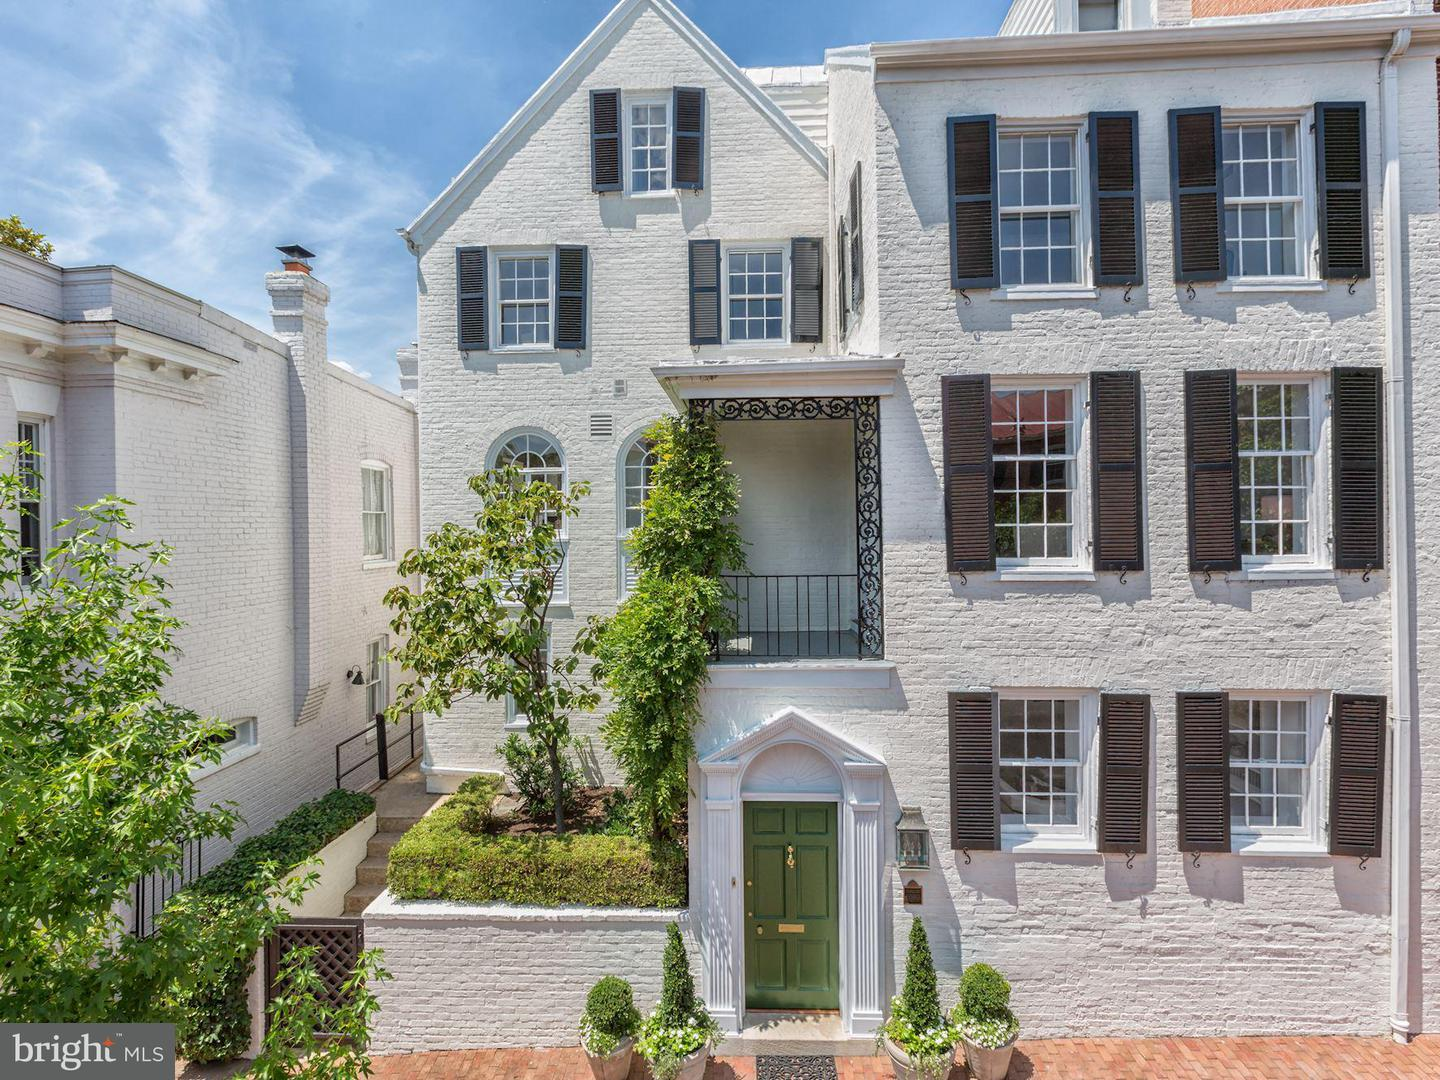 Single Family for Sale at 1314 28th St NW Washington, District Of Columbia 20007 United States